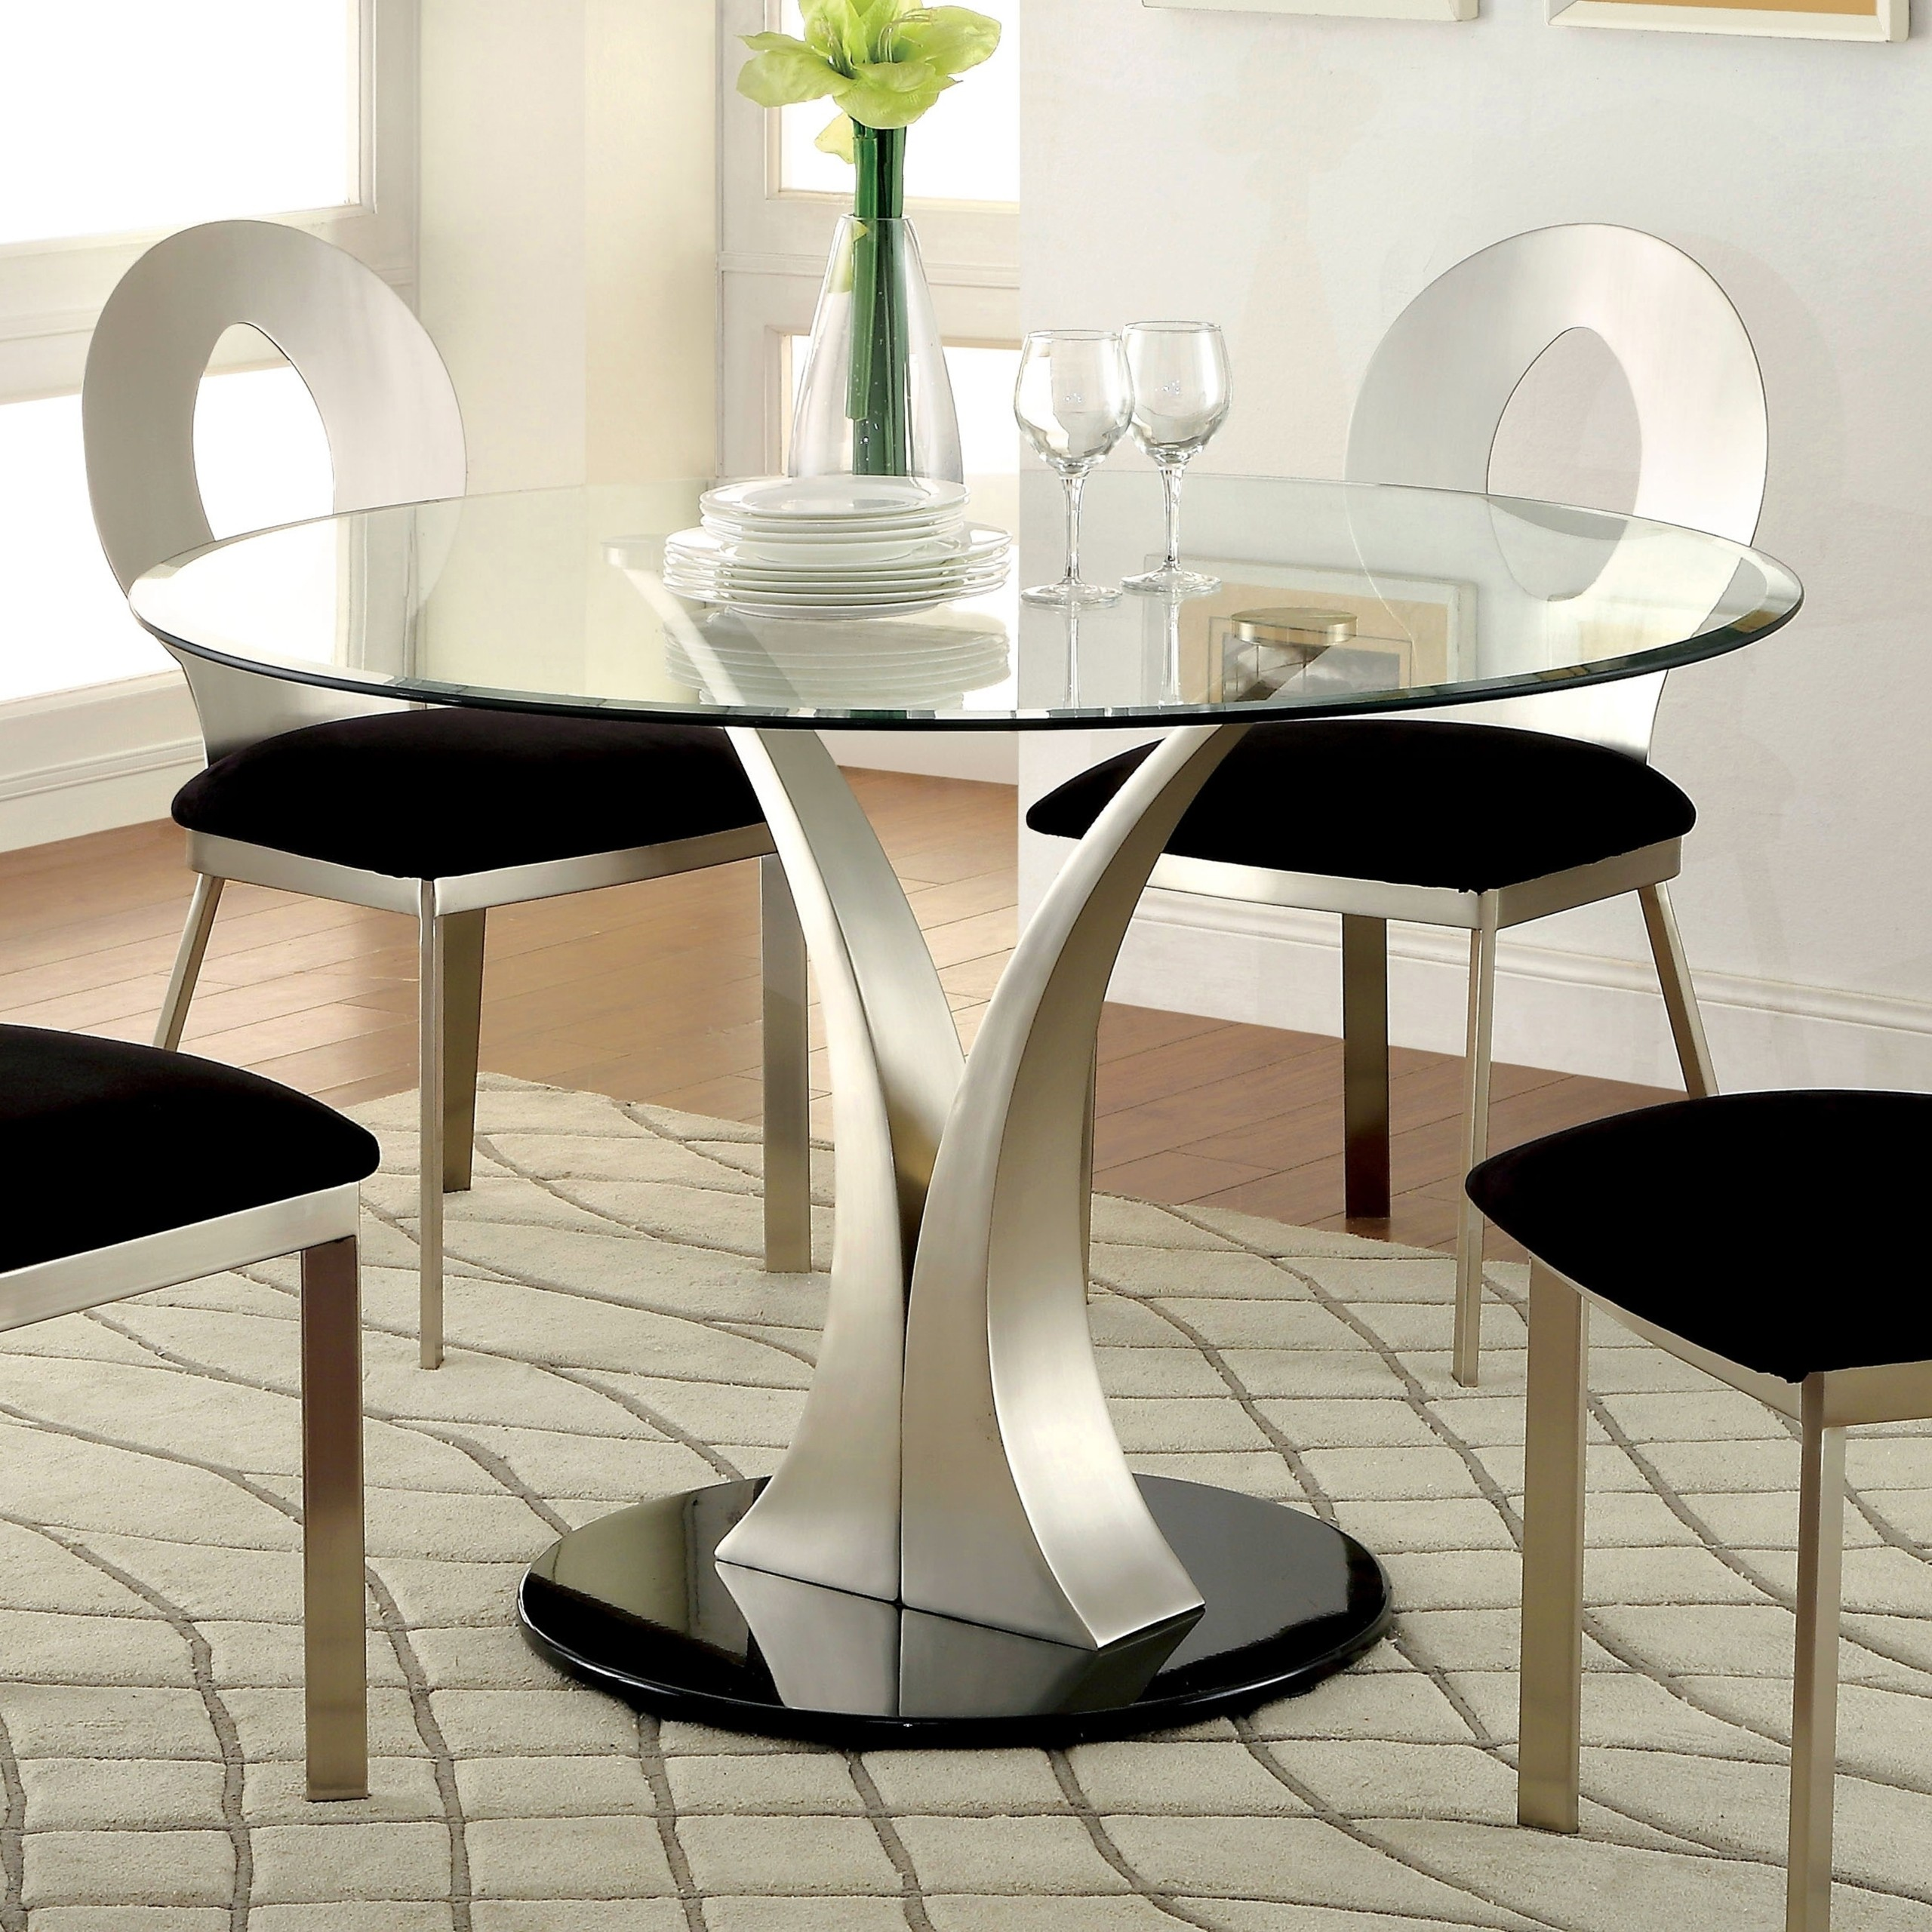 Furniture Of America Sculpture Iii Contemporary Glass Top Round Dining